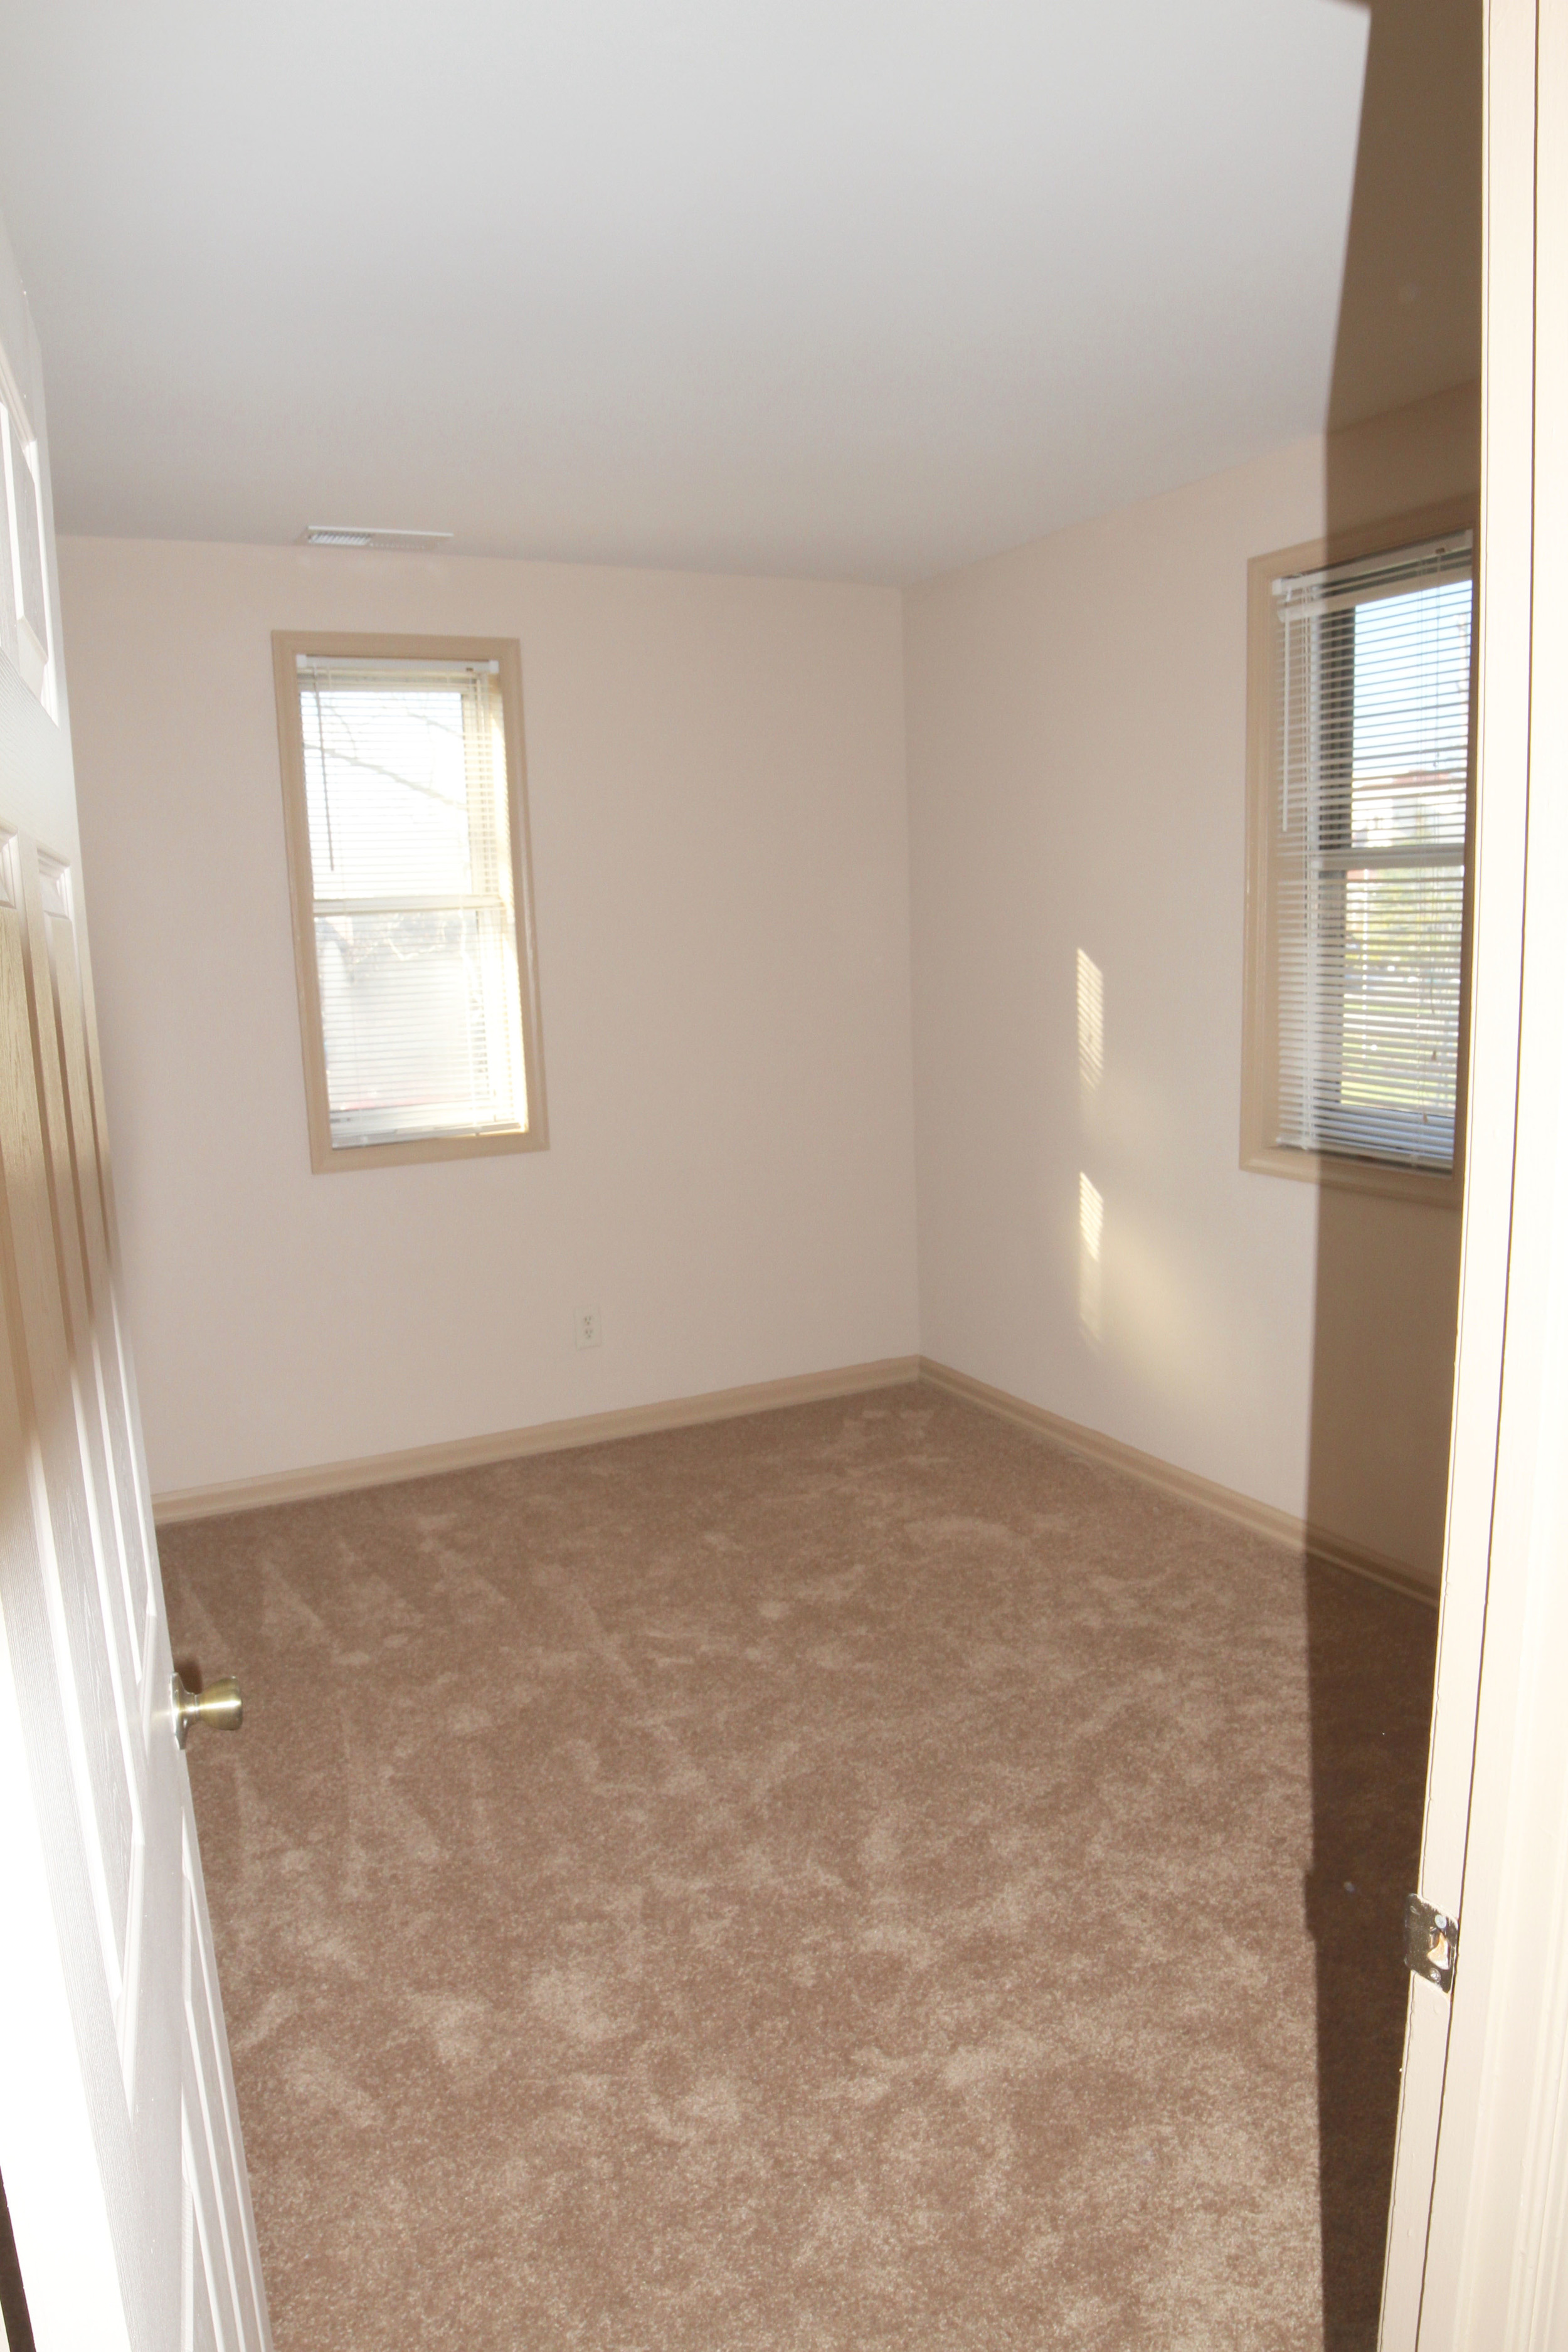 The smaller bedroom is a great size, with two windows and plenty of closet space!